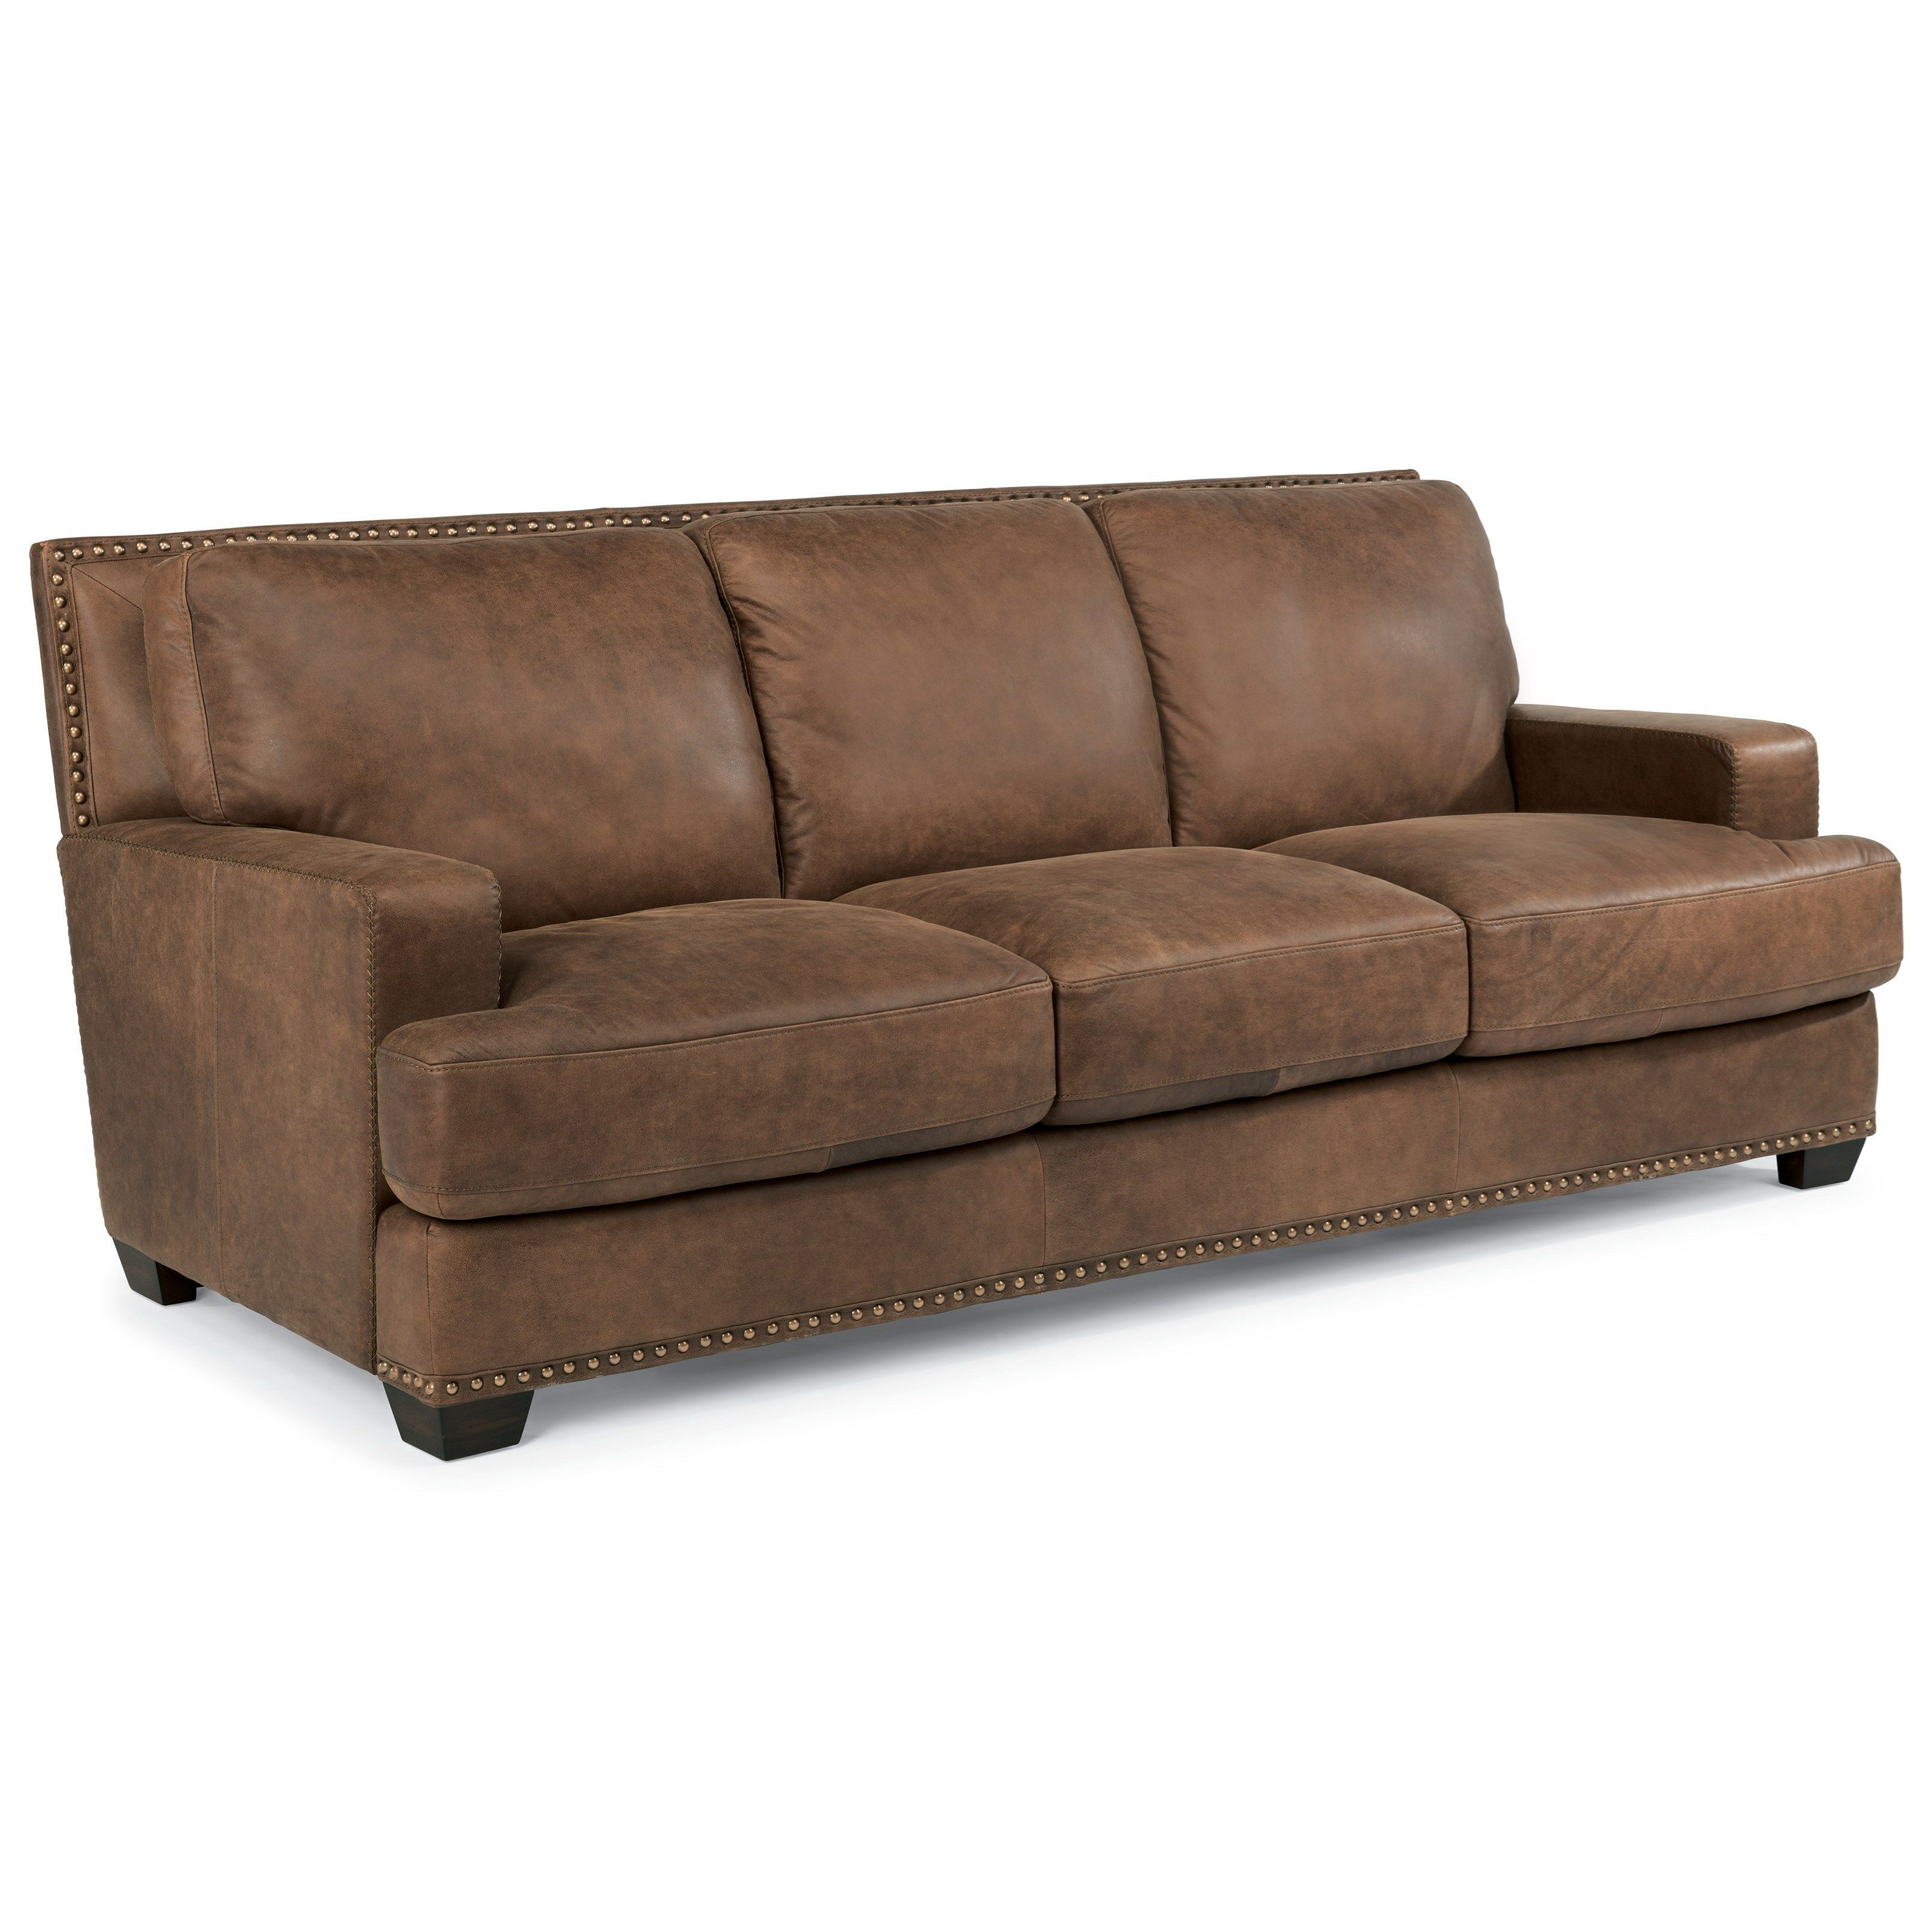 sof flexsteel couches digby couch sofa furniture collections upholstered sofas wayside lsg item